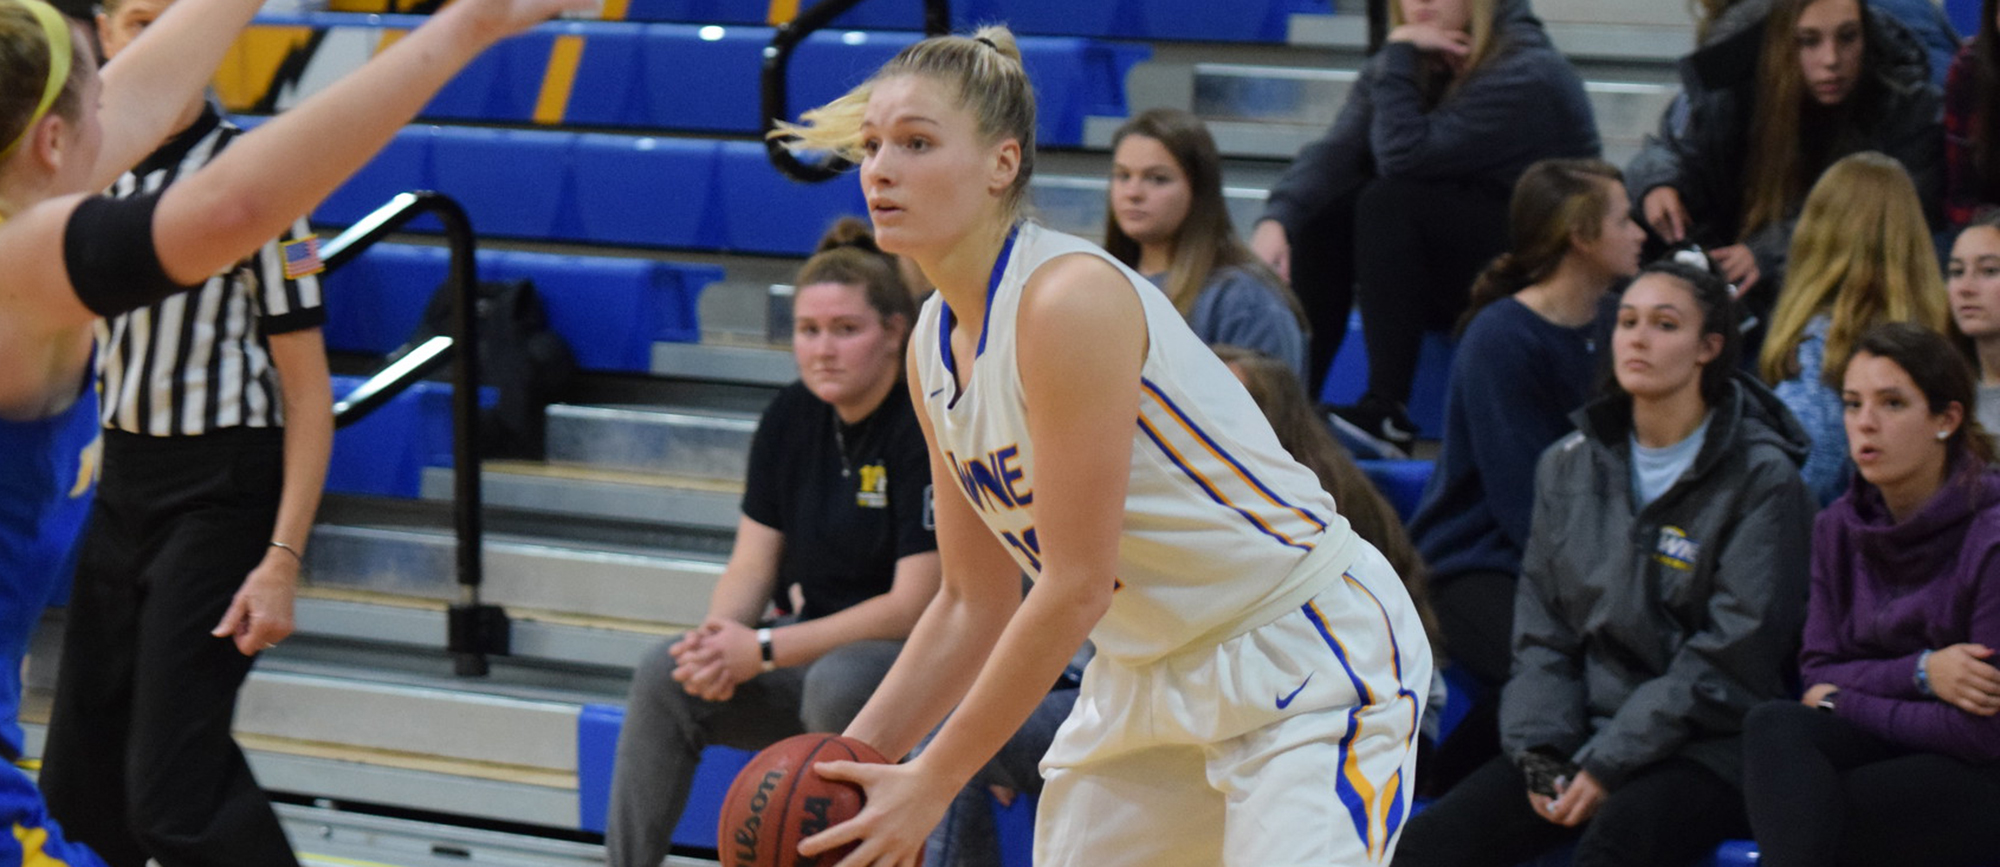 Senior guard Courtney Carlson scored a career-high 24 points in Western New England's 86-68 win over Westfield State on Thursday night. (Photo by Rachel Margossian)